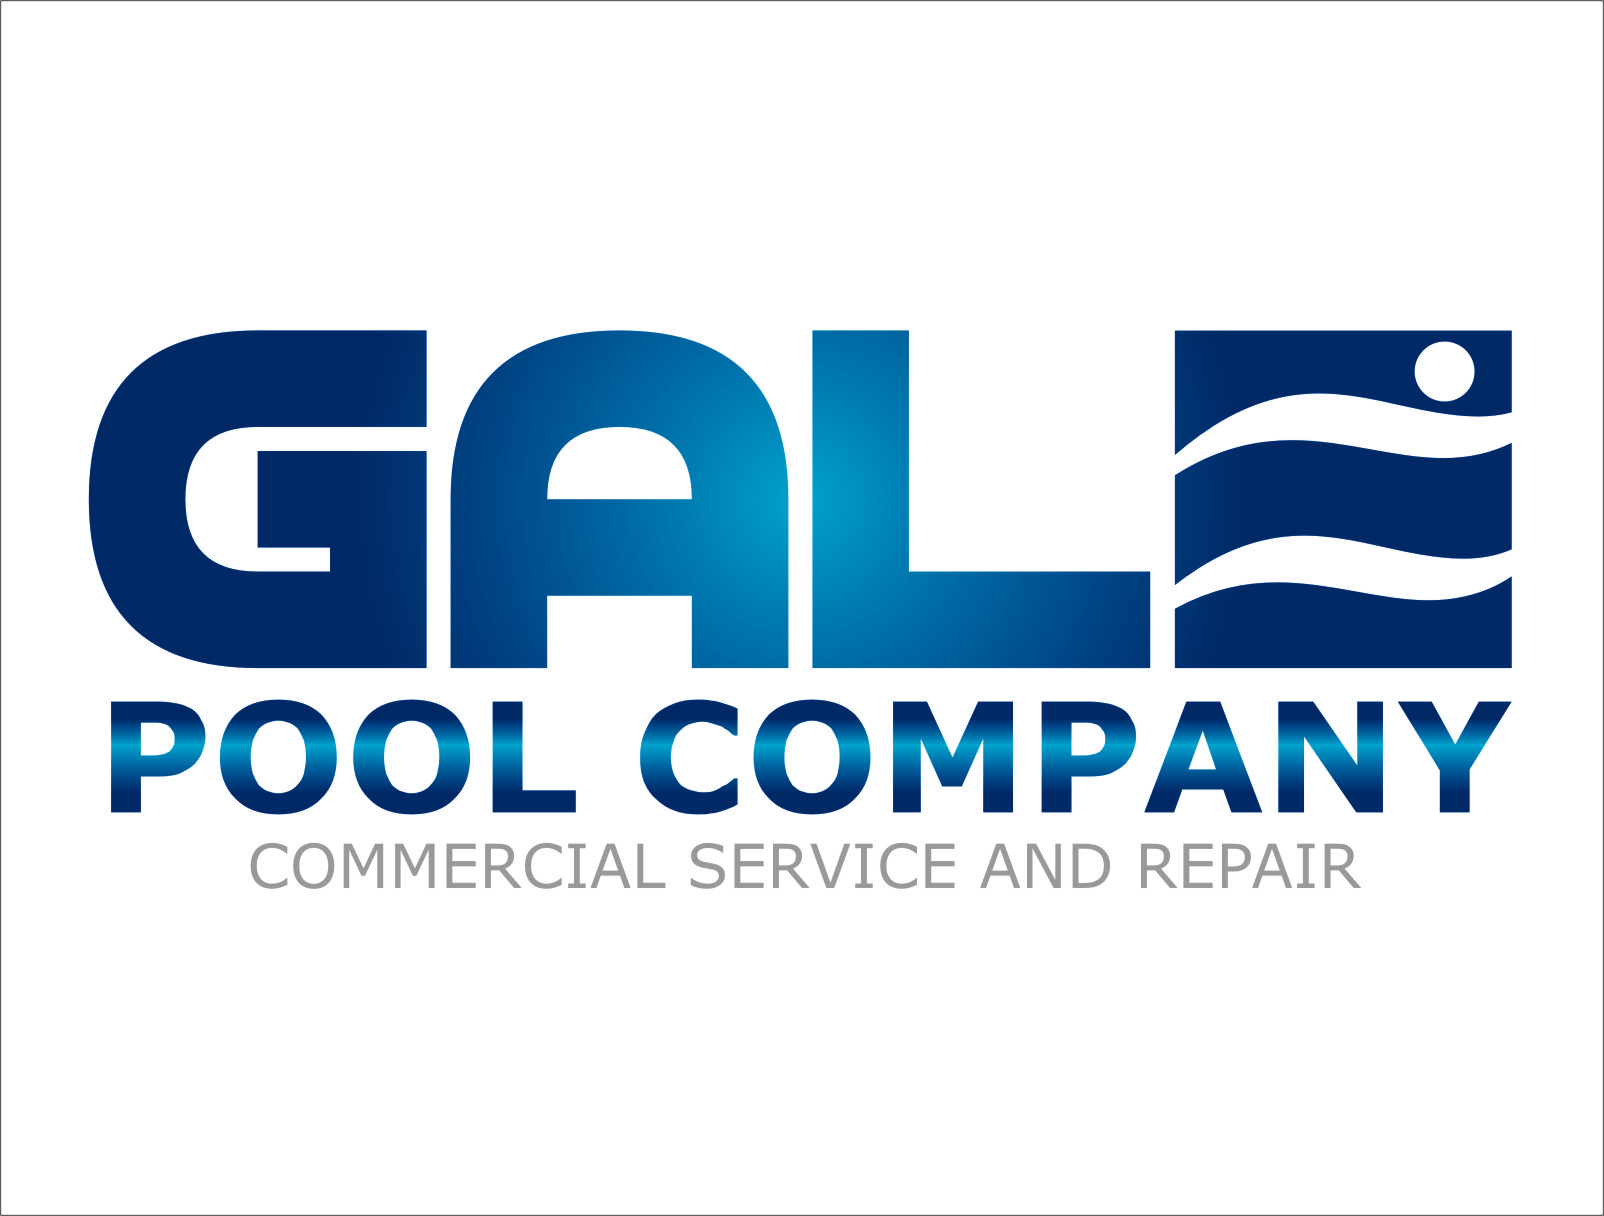 Logo Design by Ngepet_art - Entry No. 116 in the Logo Design Contest Imaginative Logo Design for Gale Pool Company.